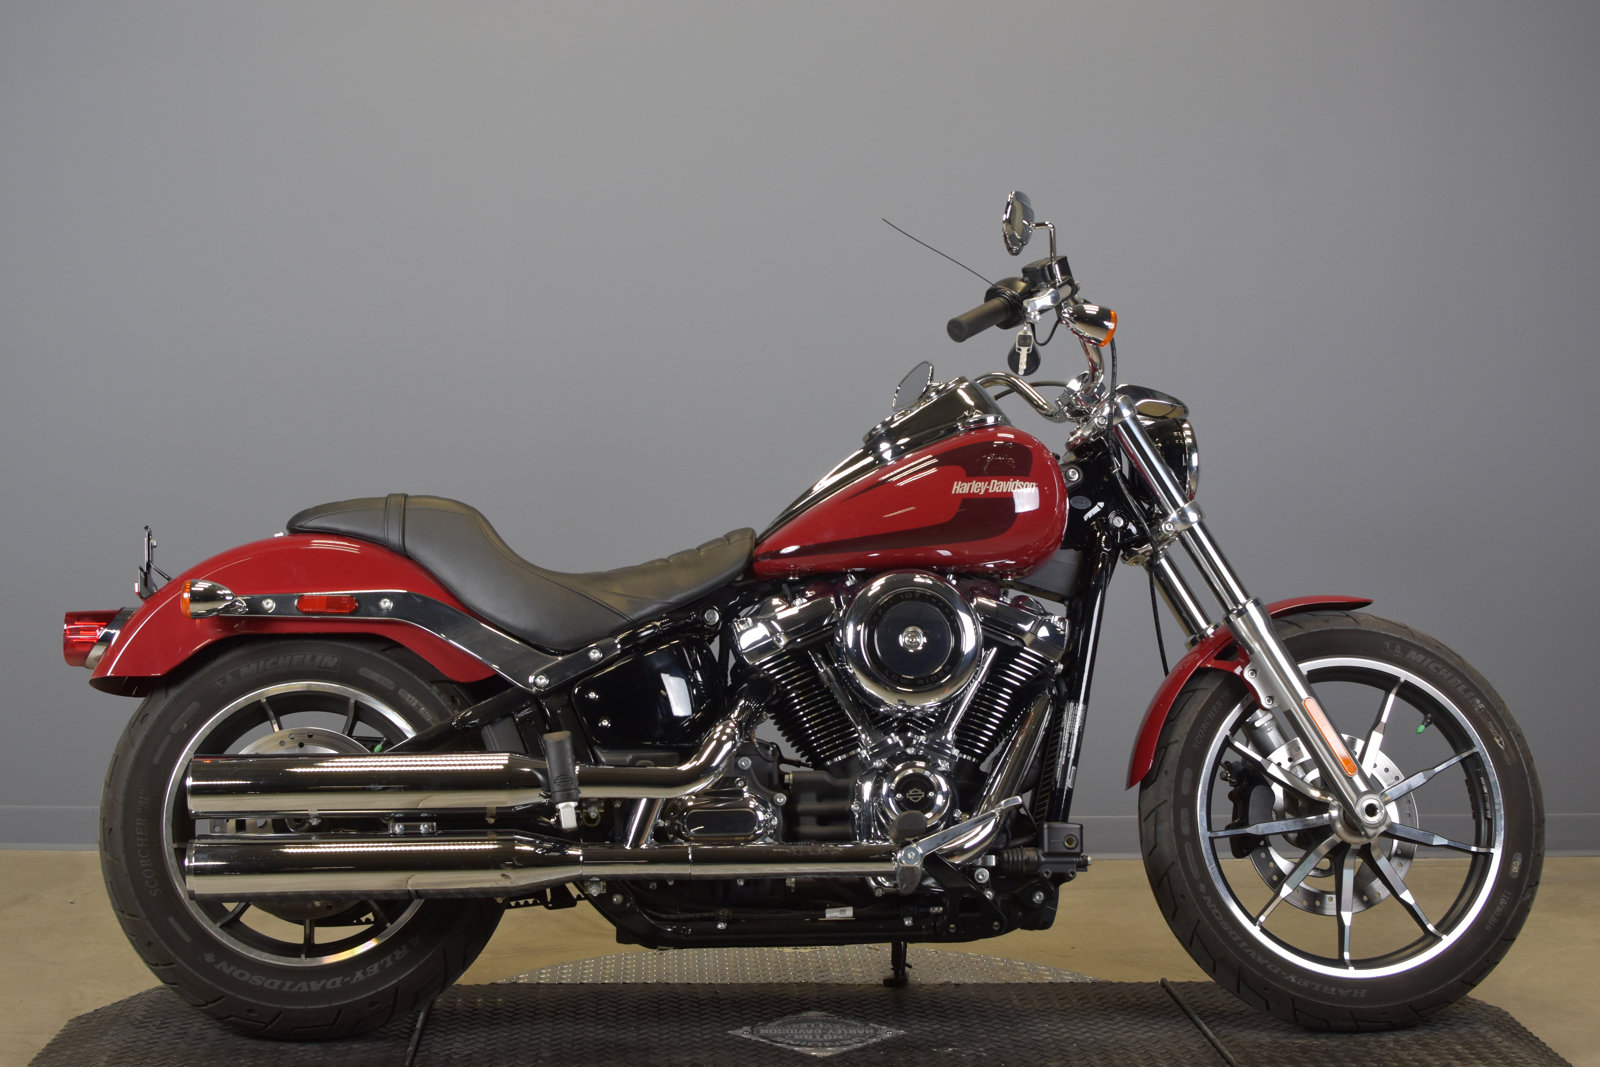 Certified Pre-Owned 2020 Harley-Davidson Softail Low Rider FXLR